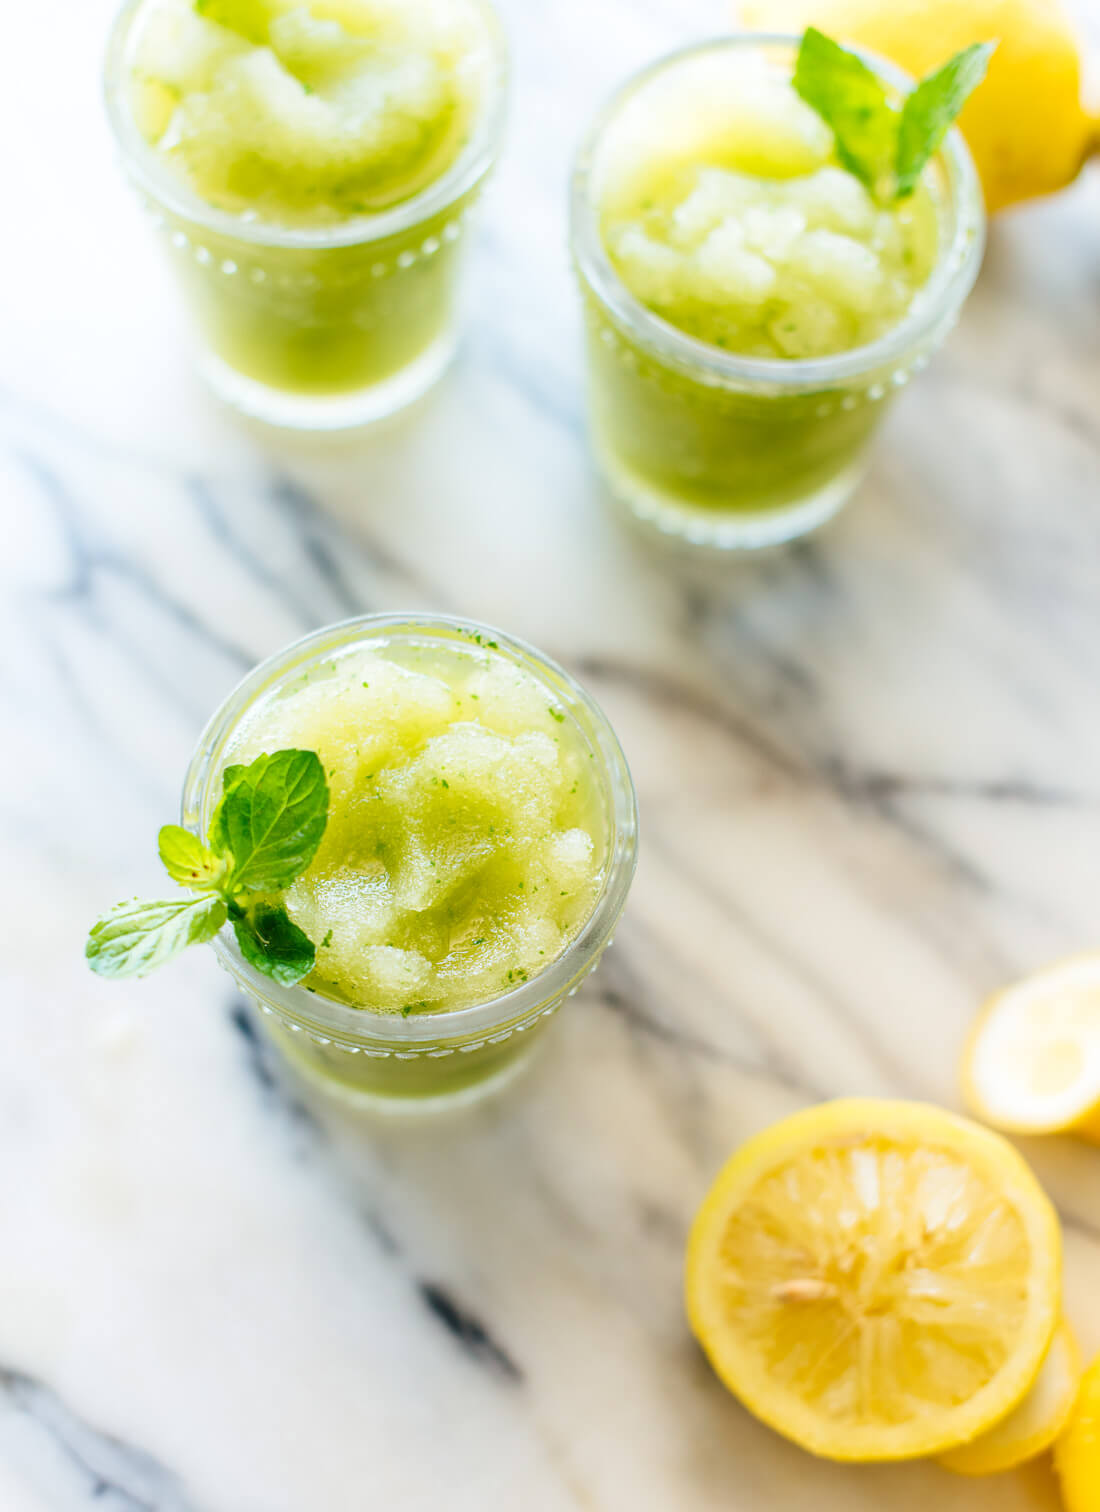 This frozen mint lemonade recipe is super refreshing and easy to make! cookieandkate.com